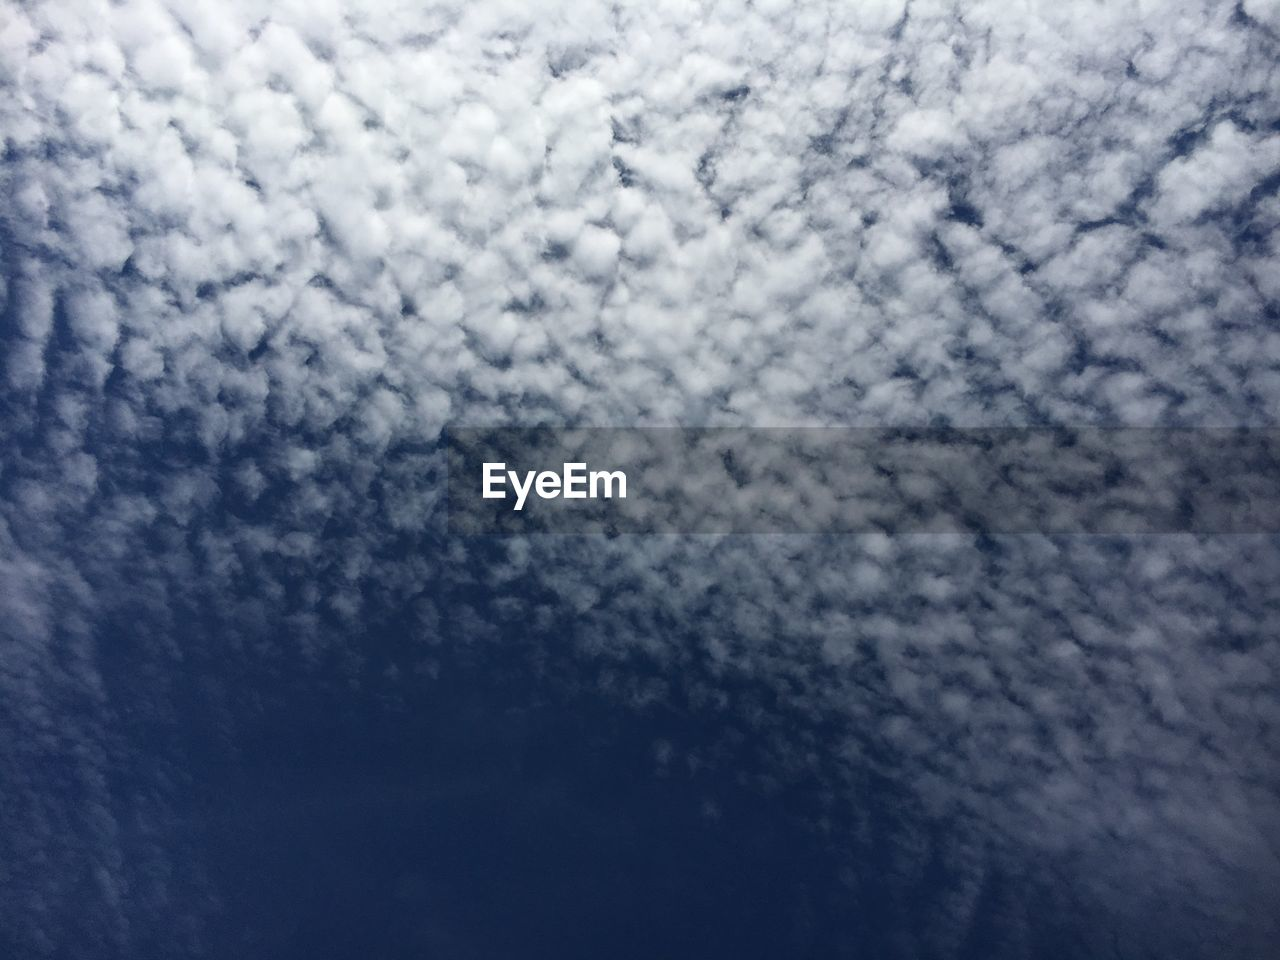 backgrounds, cloud - sky, no people, sky, nature, beauty in nature, full frame, textured, abstract, pattern, day, sky only, scenics, blue, outdoors, close-up